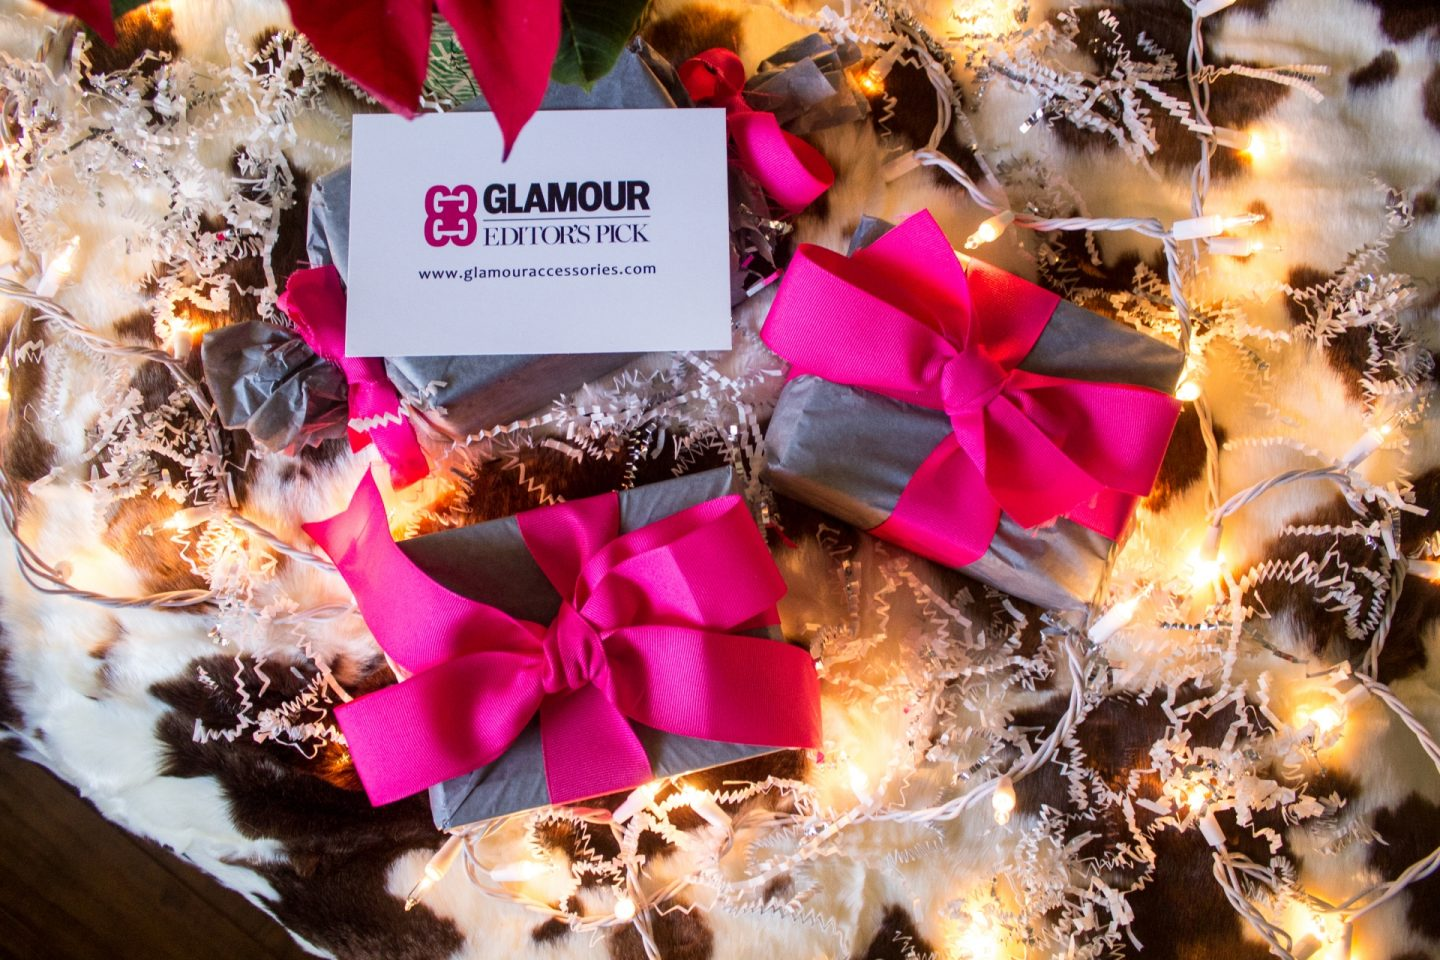 Glamour Accessories: Glamour Editor's Pick Jewelry Gift Sets